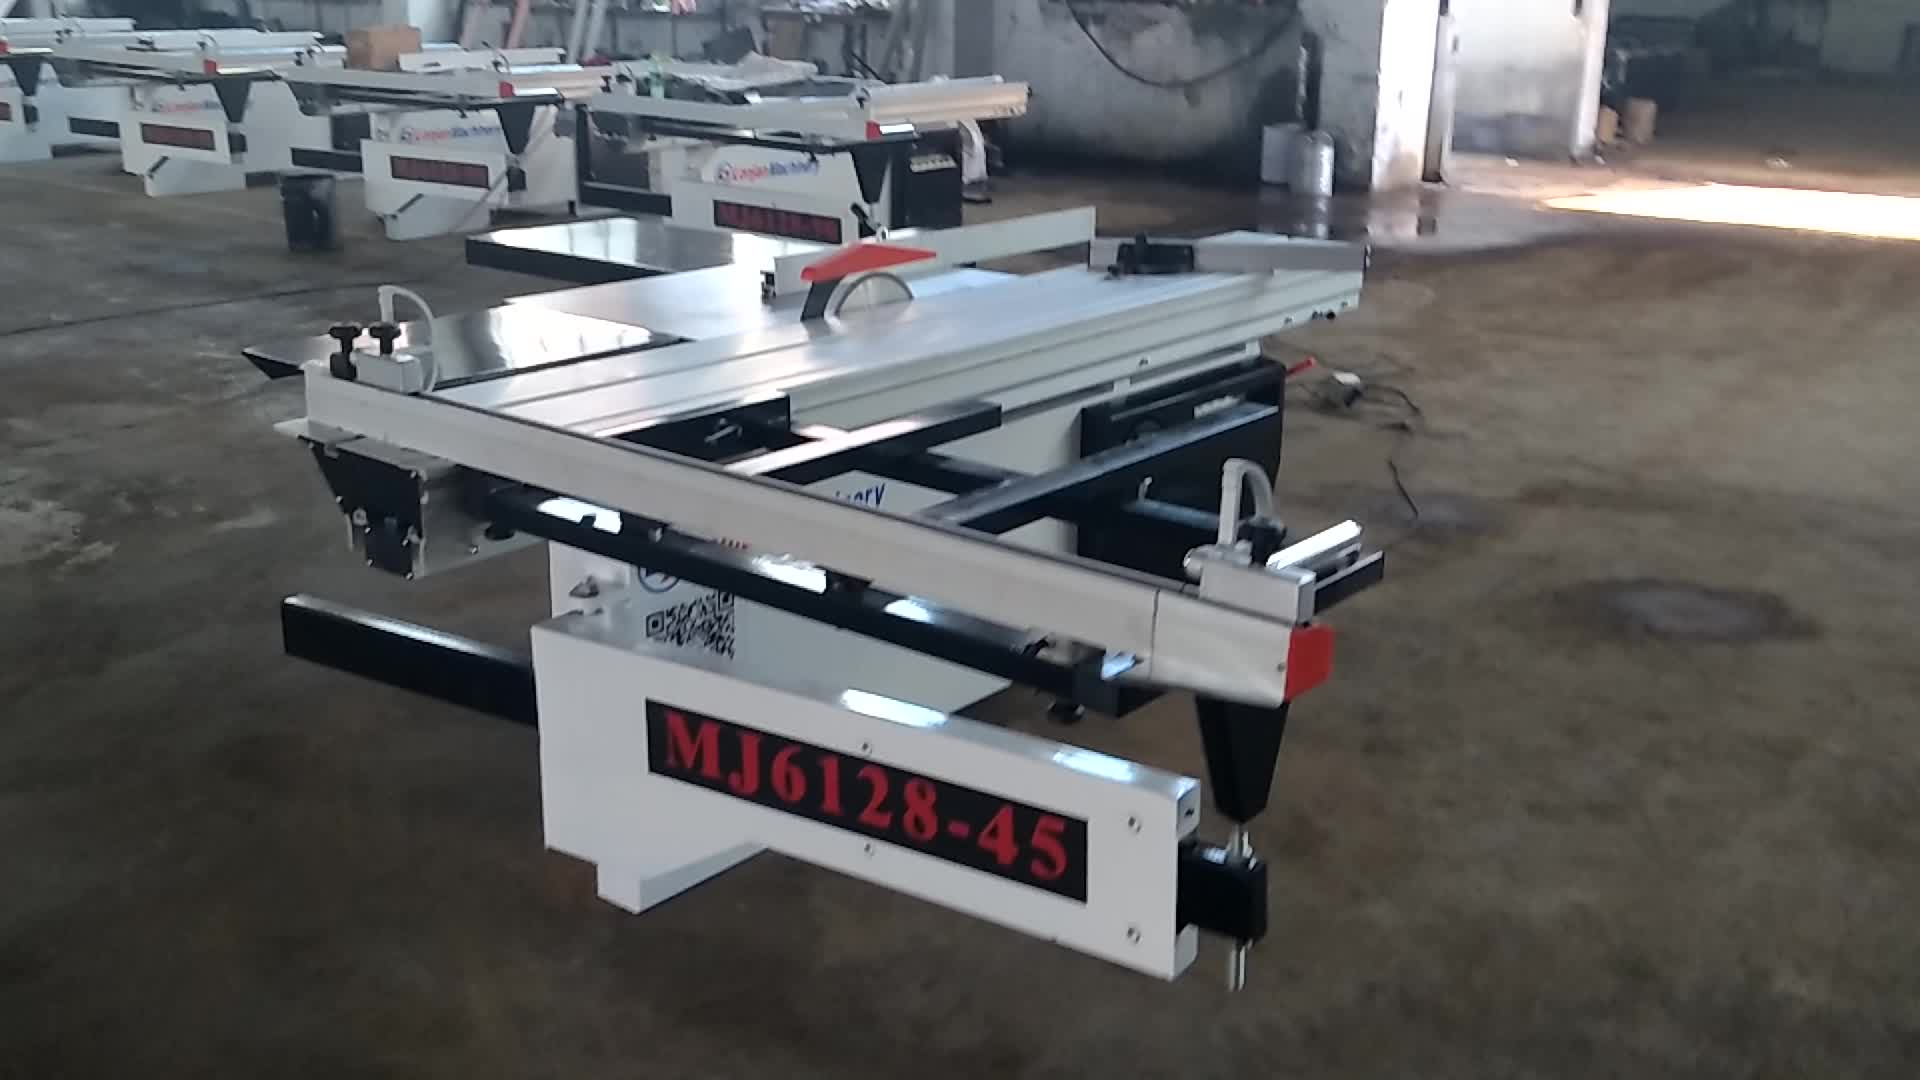 MJ6128-45H Sliding Table Panel Saw in Woodworking Machinery